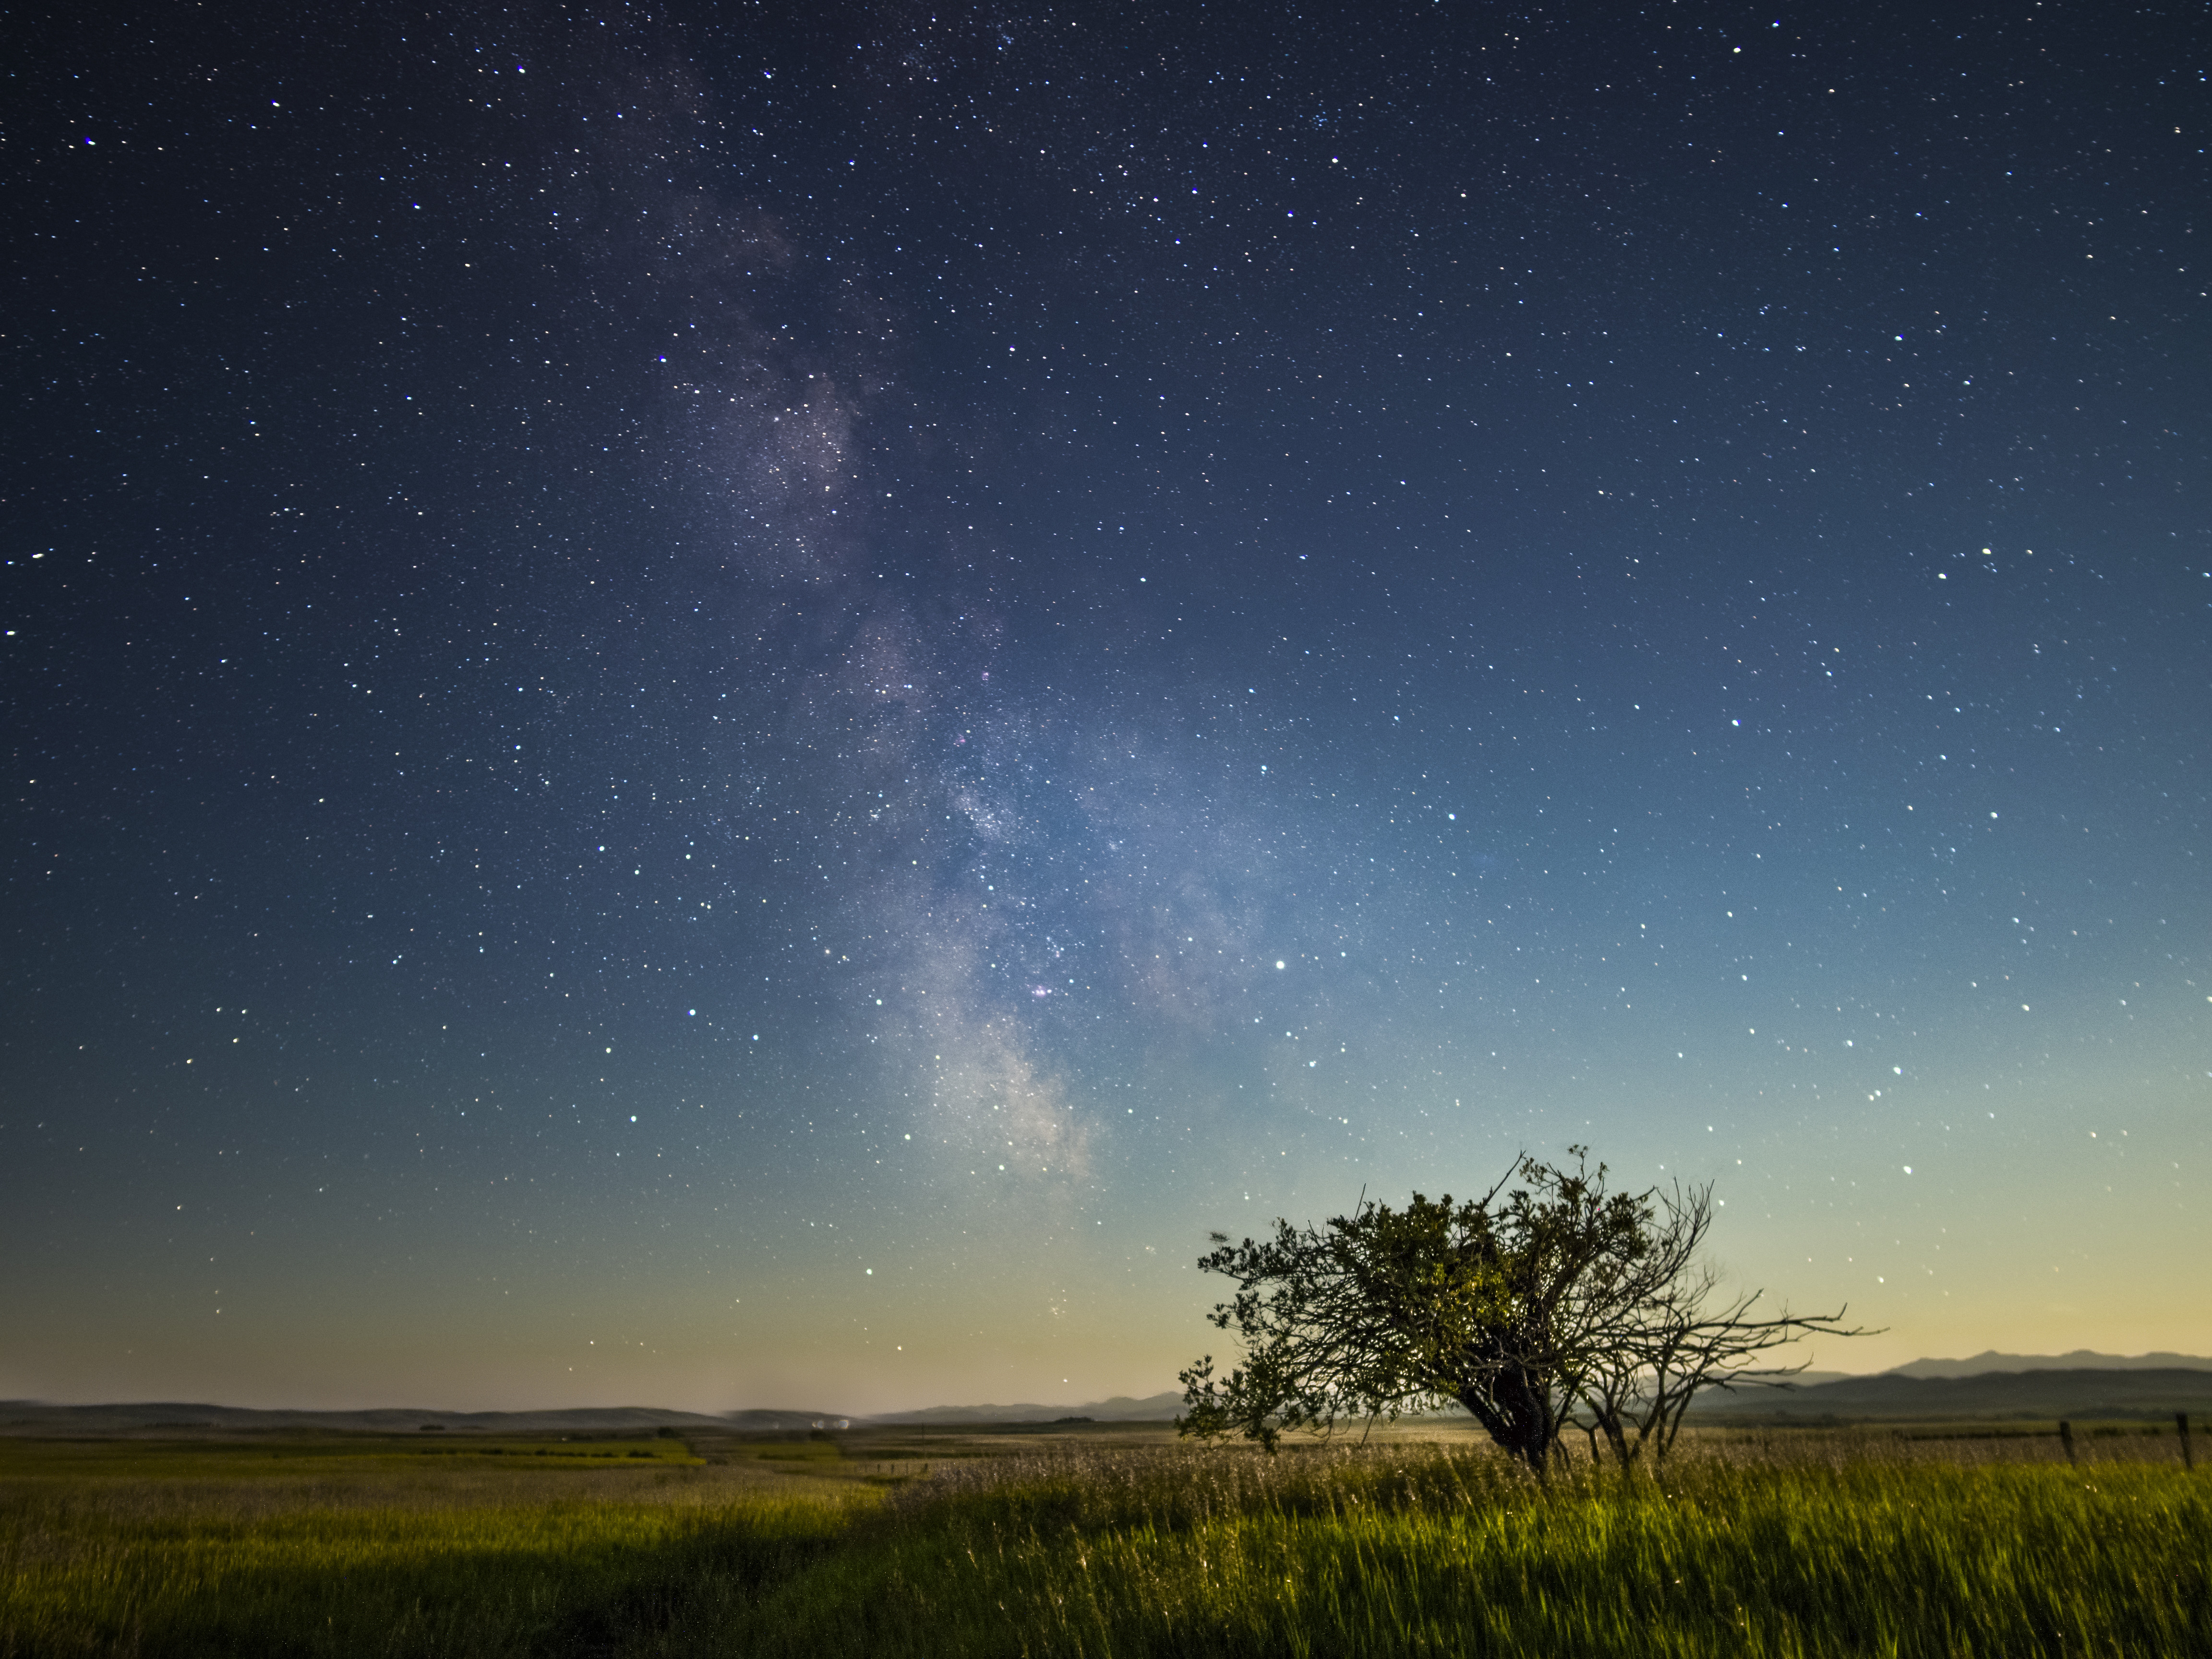 The Milky Way galactic center from a field outside of Longview, Alberta, Canada